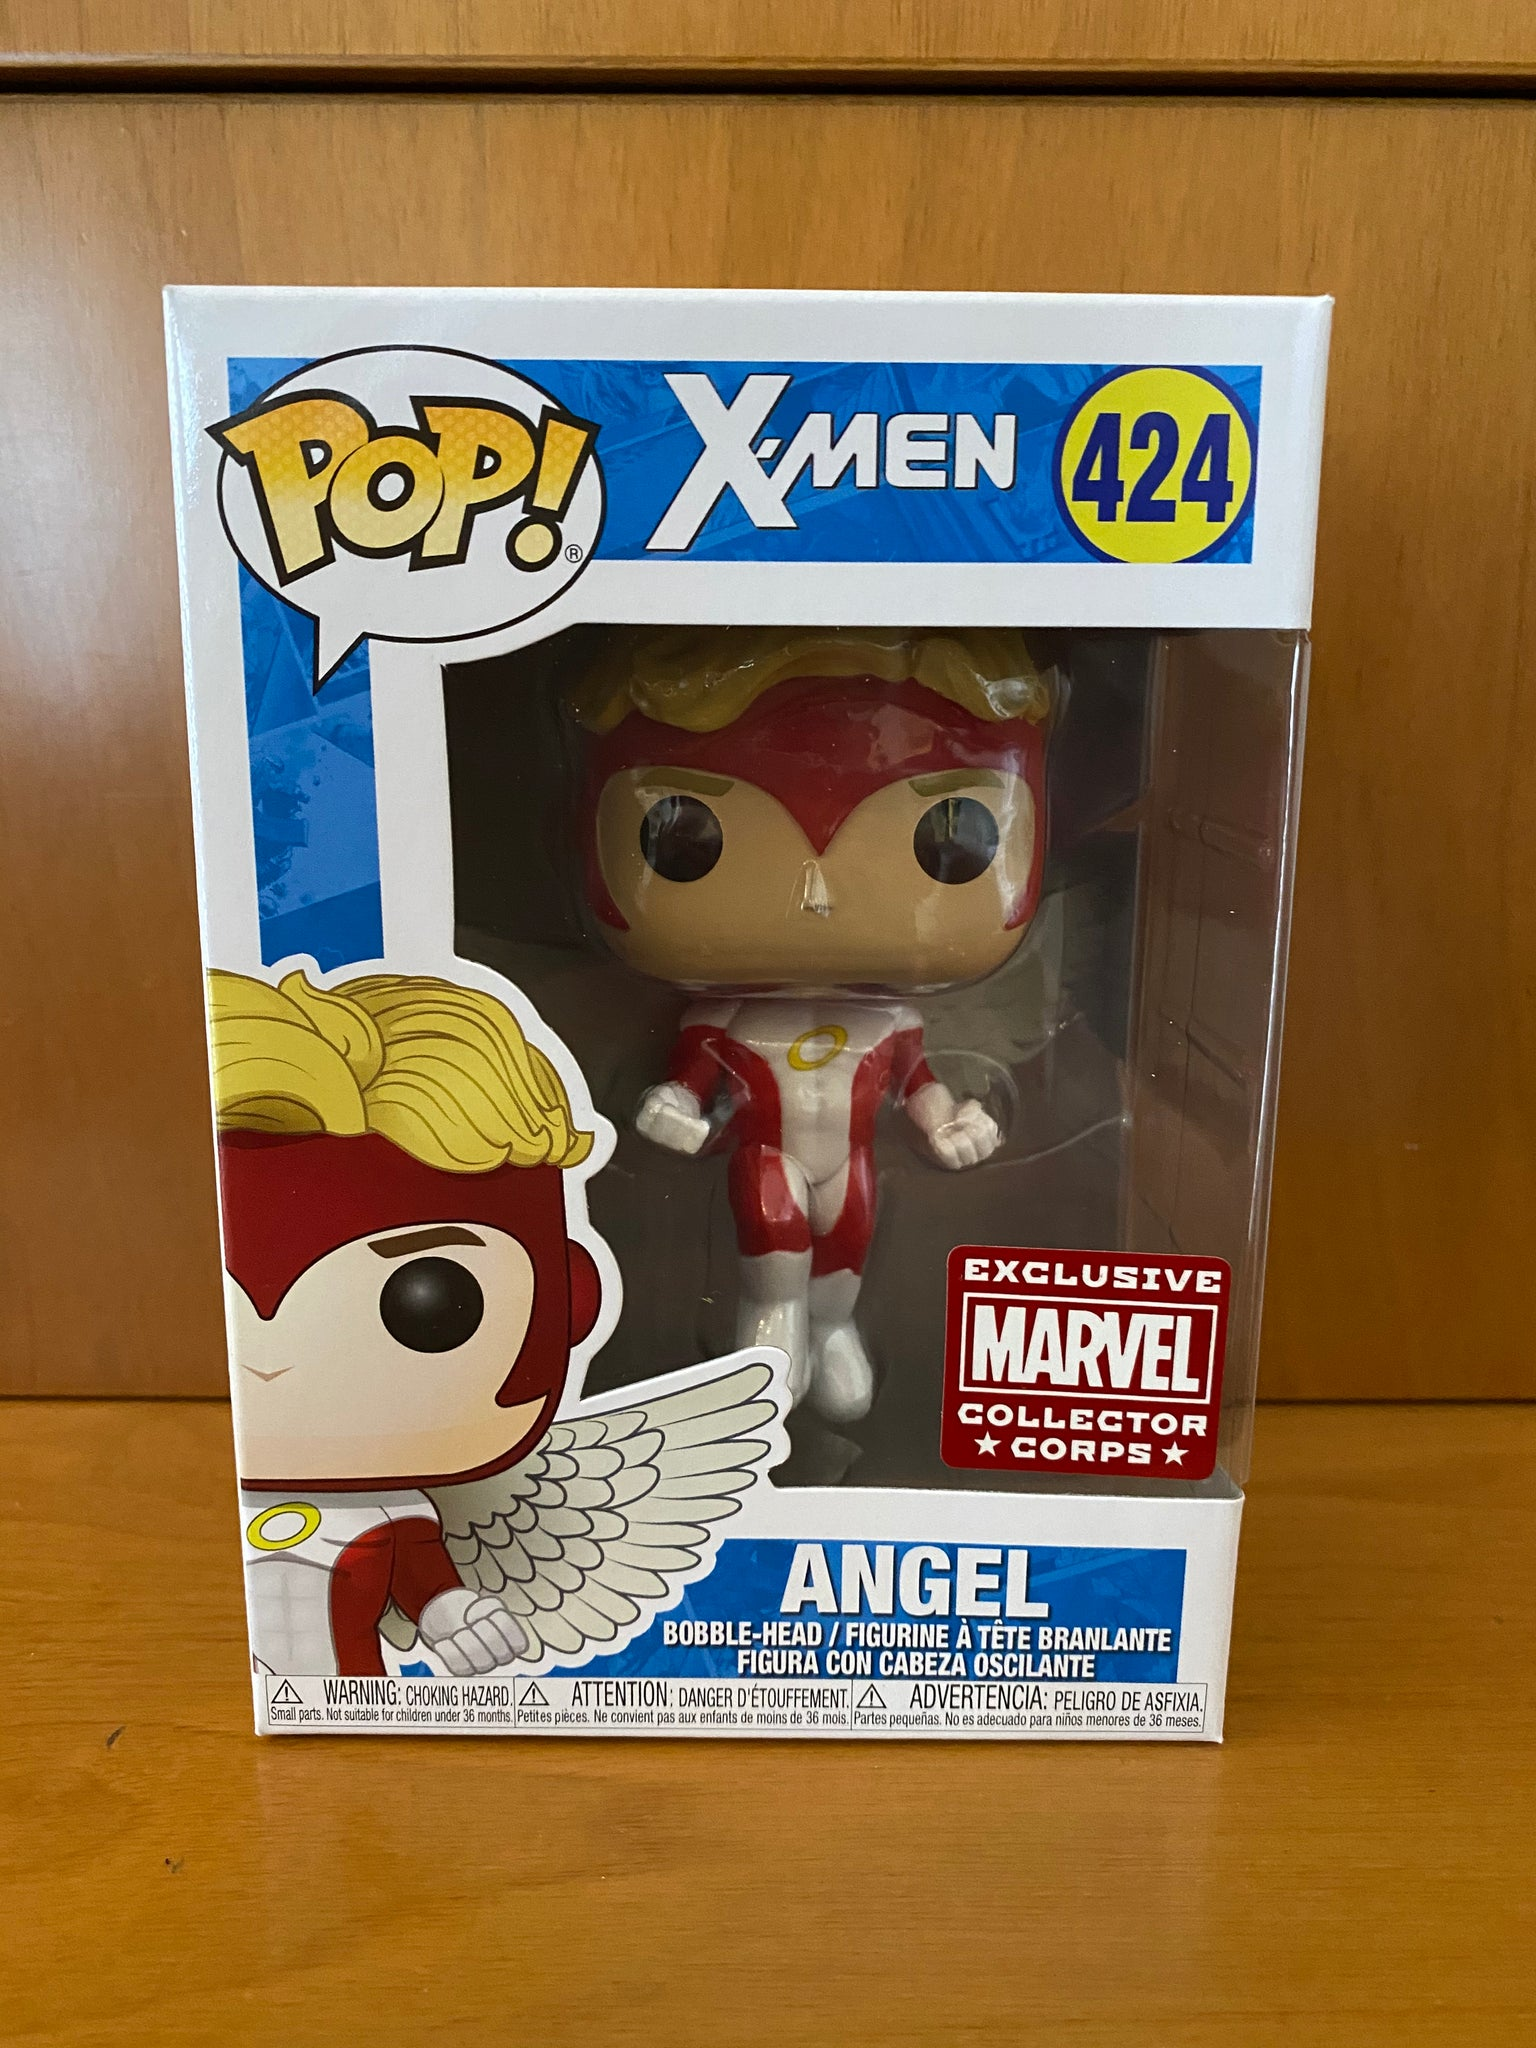 X MEN - ANGEL - #424 (MARVEL COLLECTOR CORPS) FUNKO POP!  VINYL